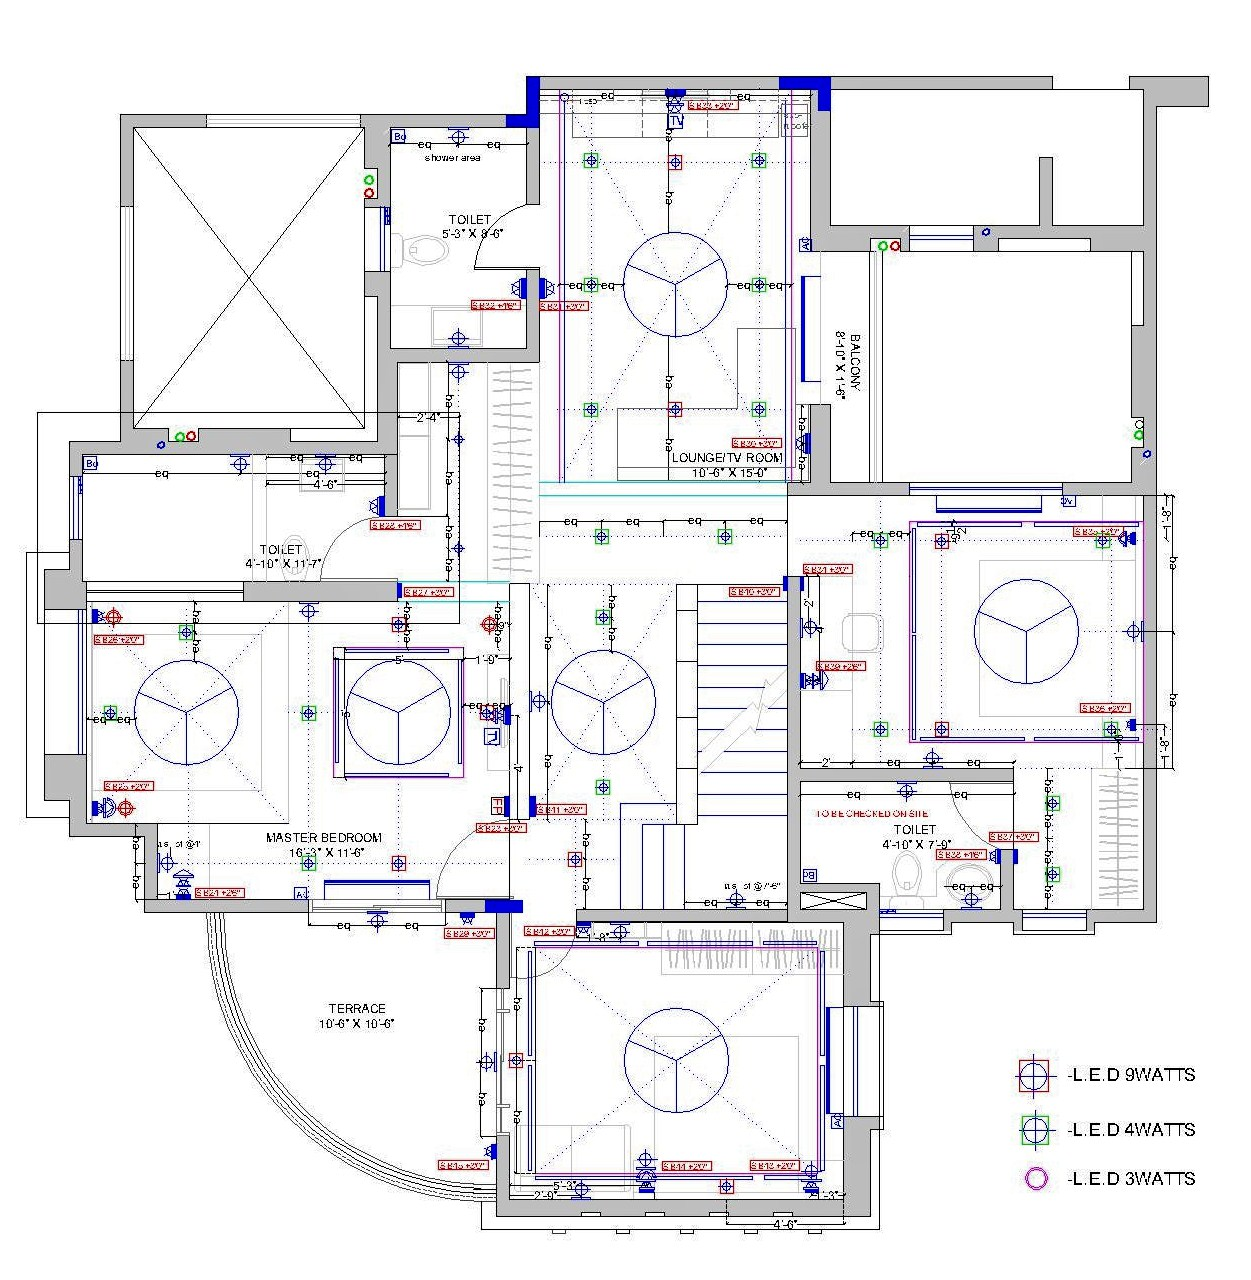 Cute Electrical Floor Plan Layout Images - Electrical and Wiring ...